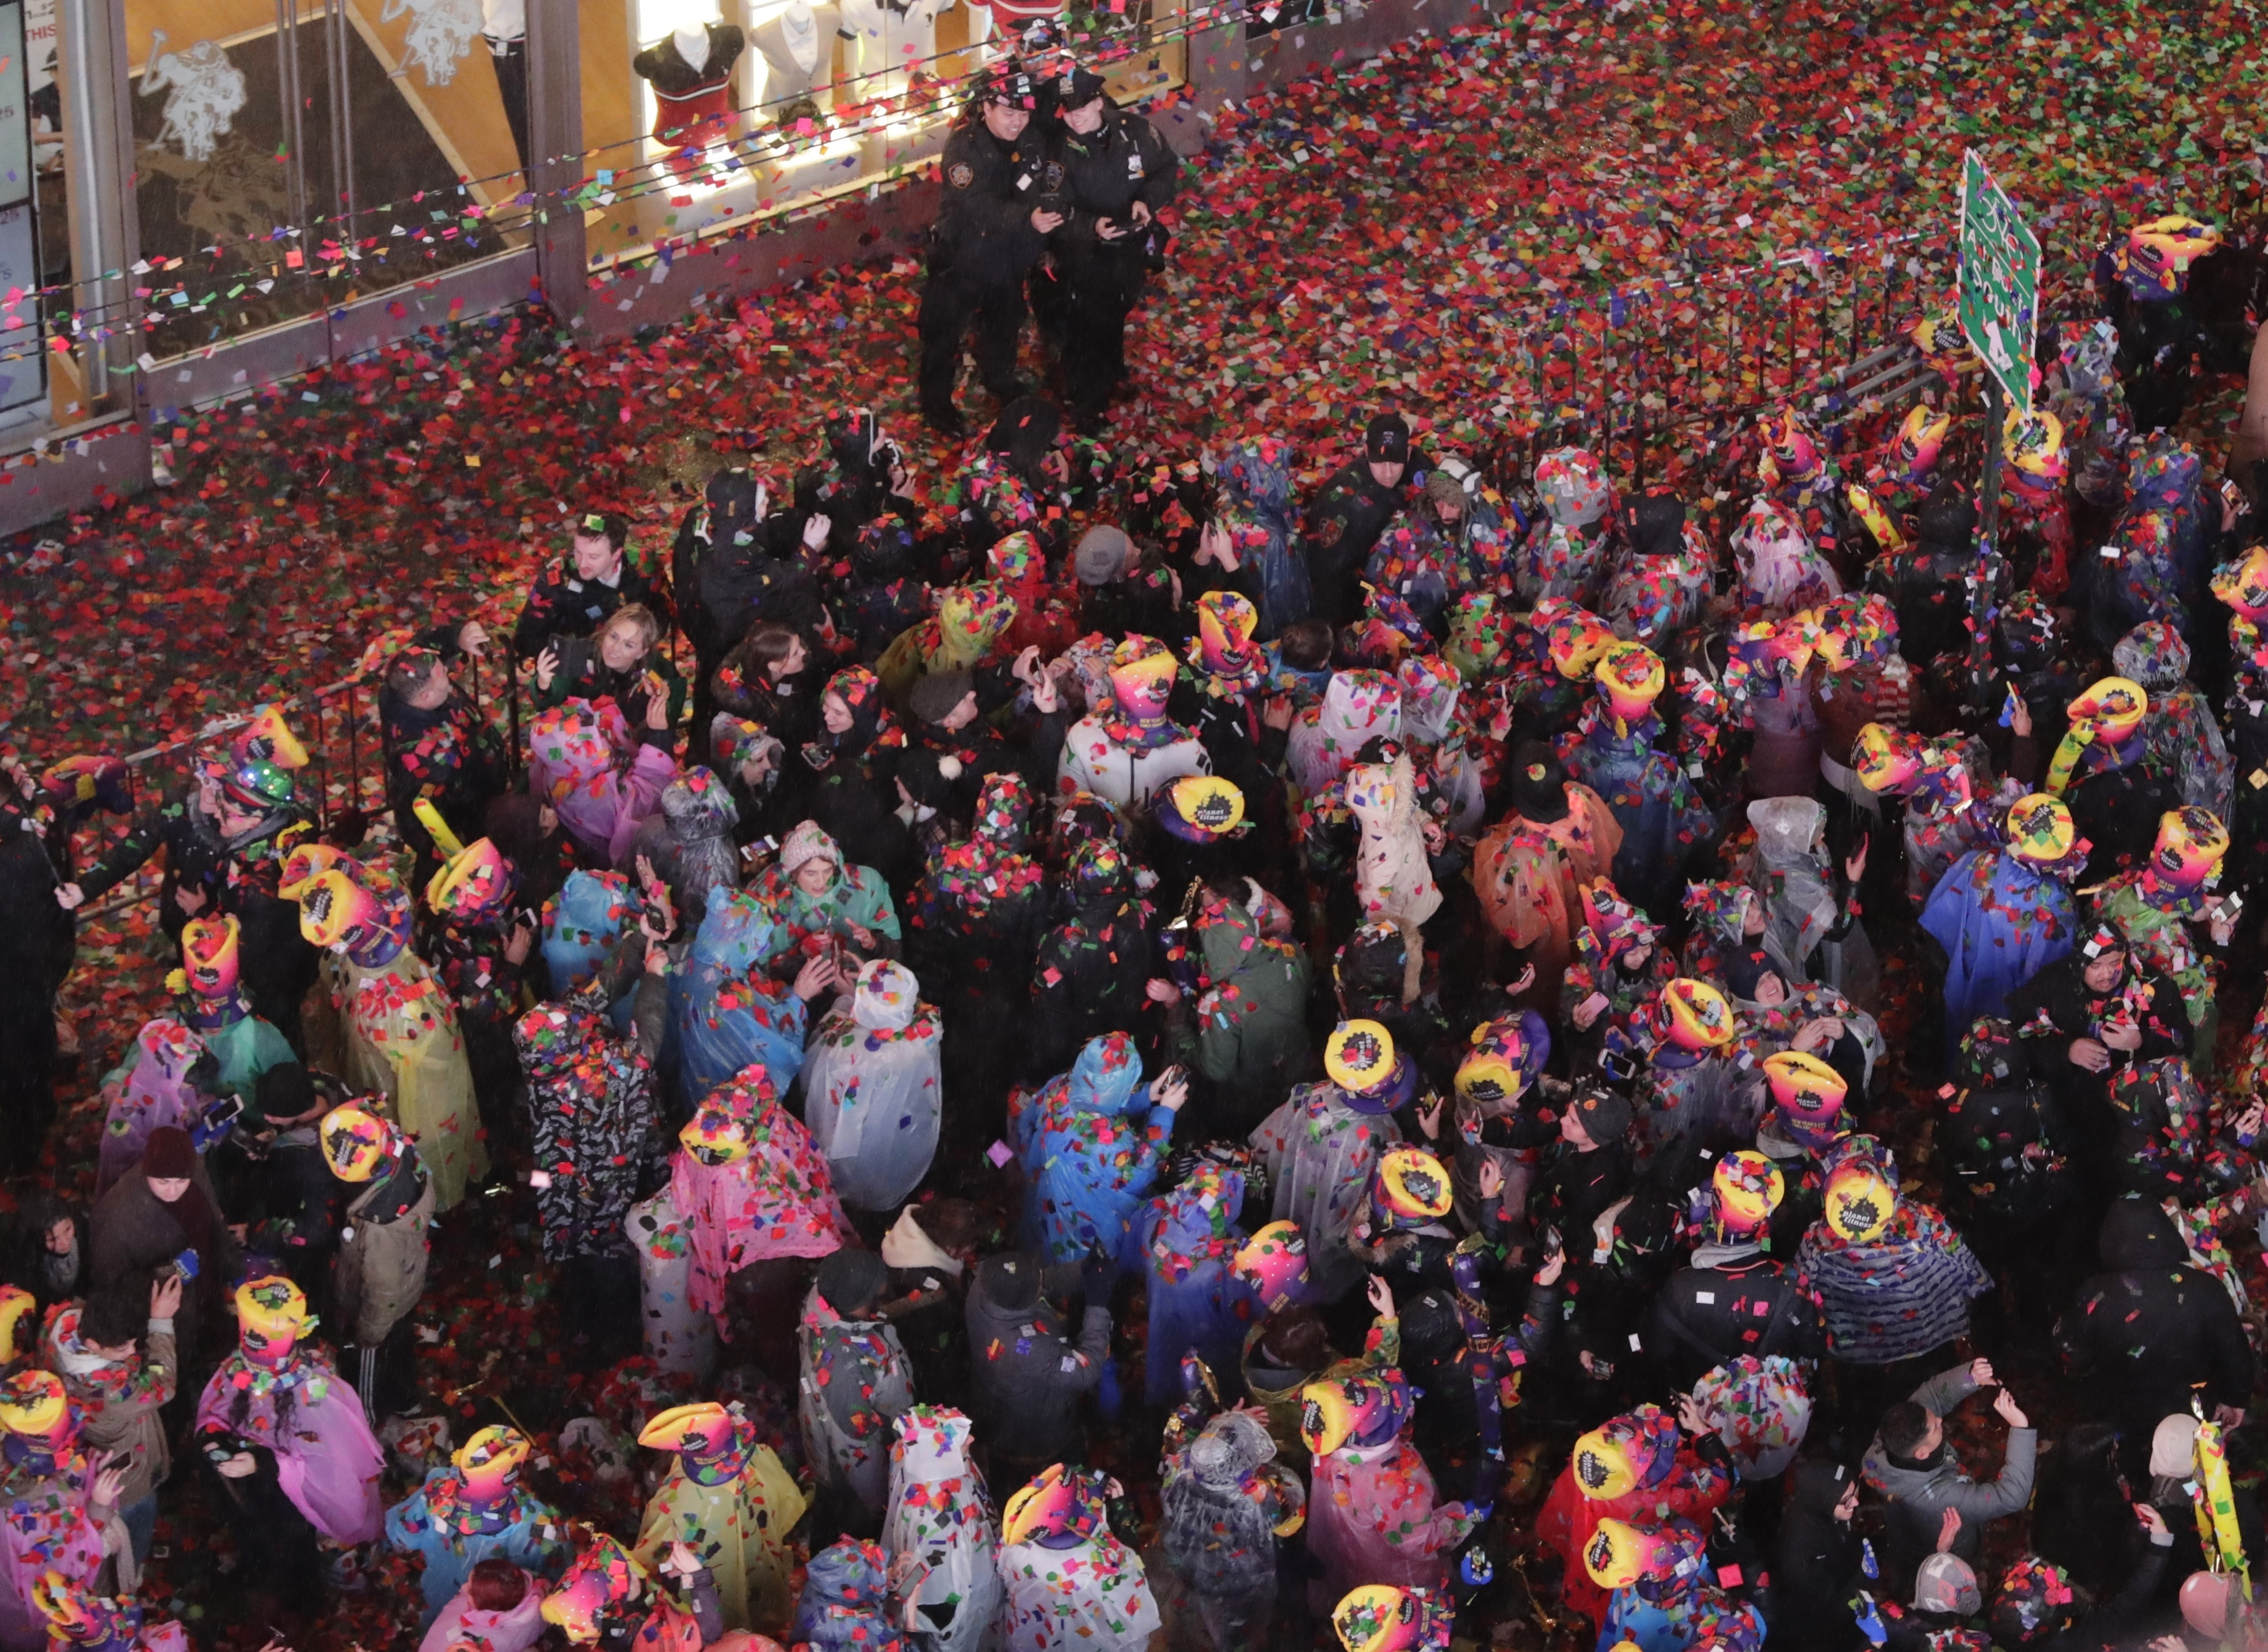 Confetti covers the crowd during the New Year's celebration in Times Square